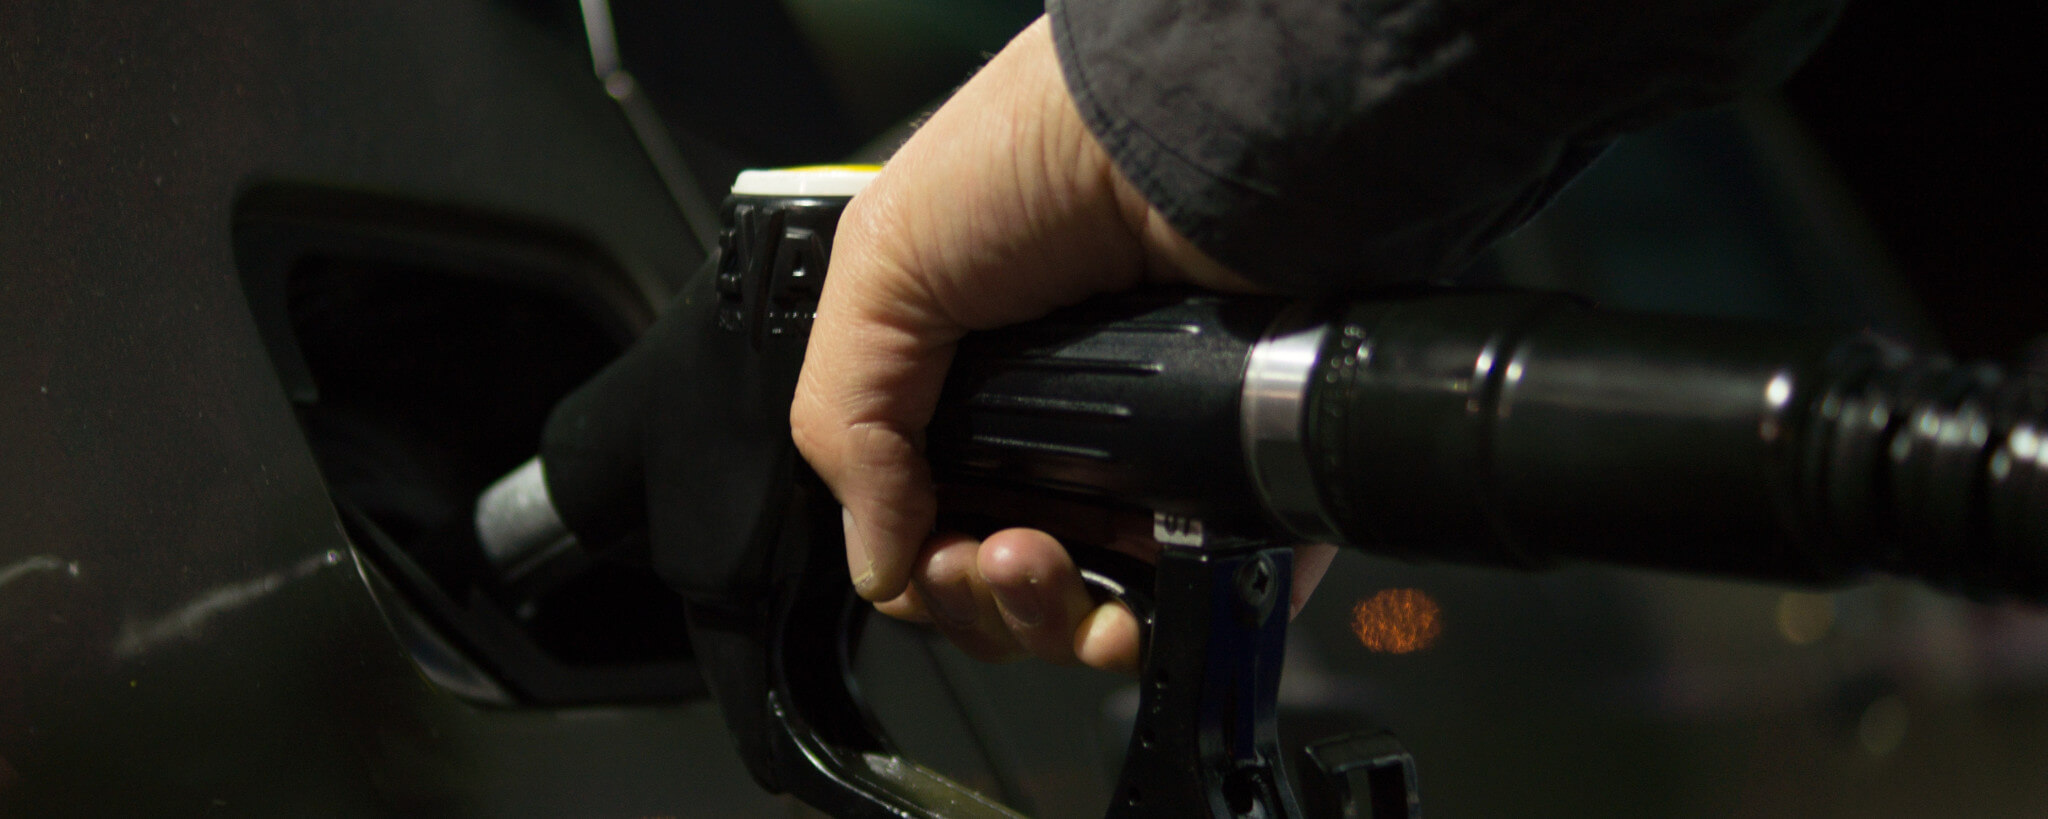 Petrol price increases lead to increased debt for consumers